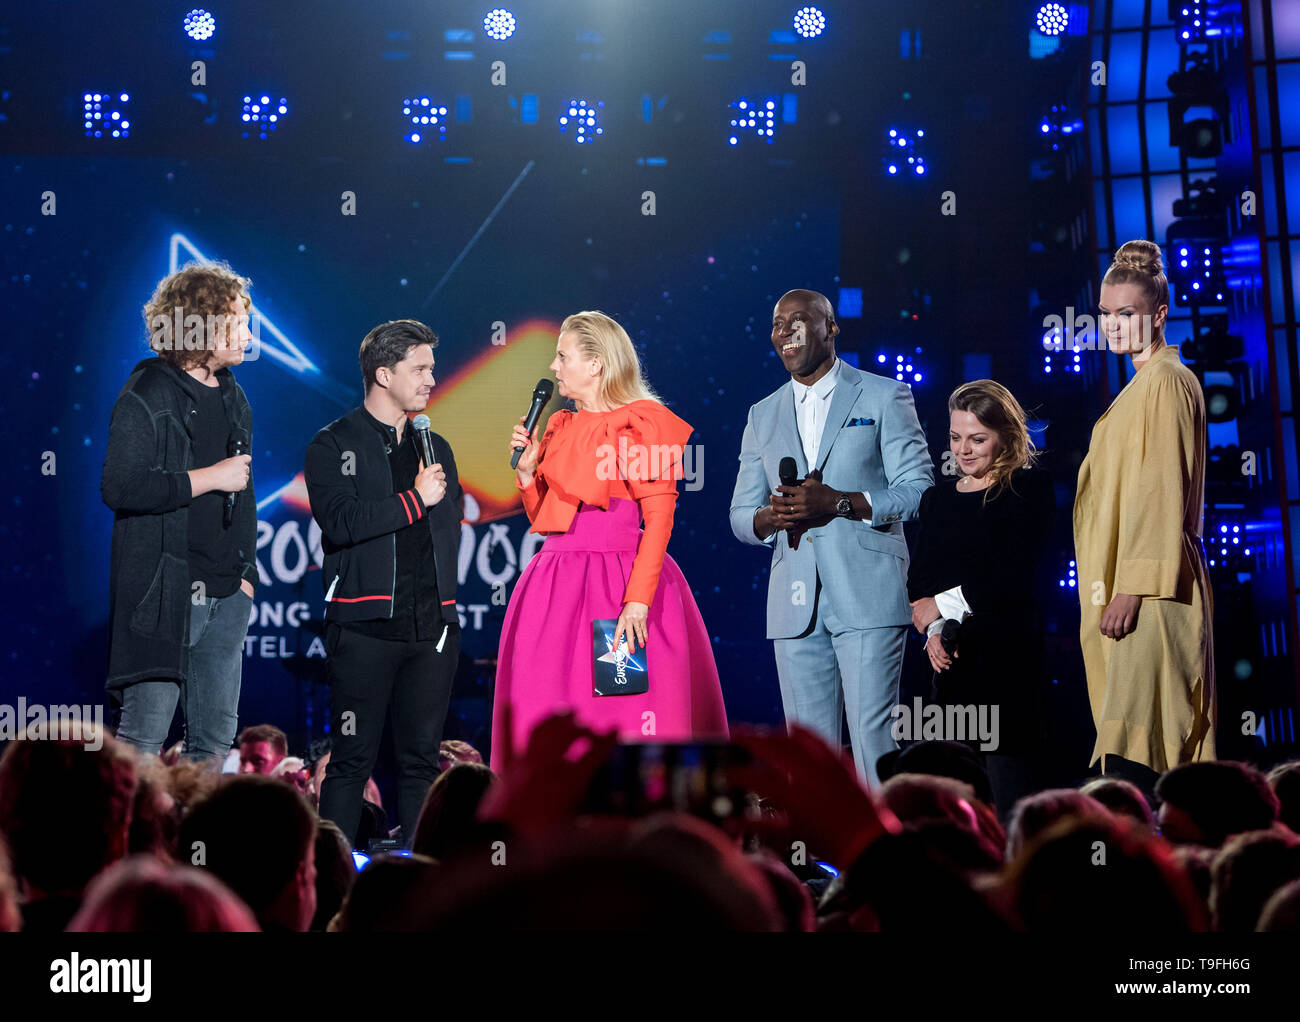 Hamburg, Germany. 19th May, 2019. Barbara Schöneberger (3.vl), presenter, is on stage at the public viewing of the Eurovision Song Contest (ESC) 2019 on the Spielbudenplatz and talks to the German jury consisting of Michael Schulte (l-r), Nico Santos, Joe Chialo, Annett Louisan and Nicola Rost. Credit: Daniel Bockwoldt/dpa/Alamy Live News - Stock Image